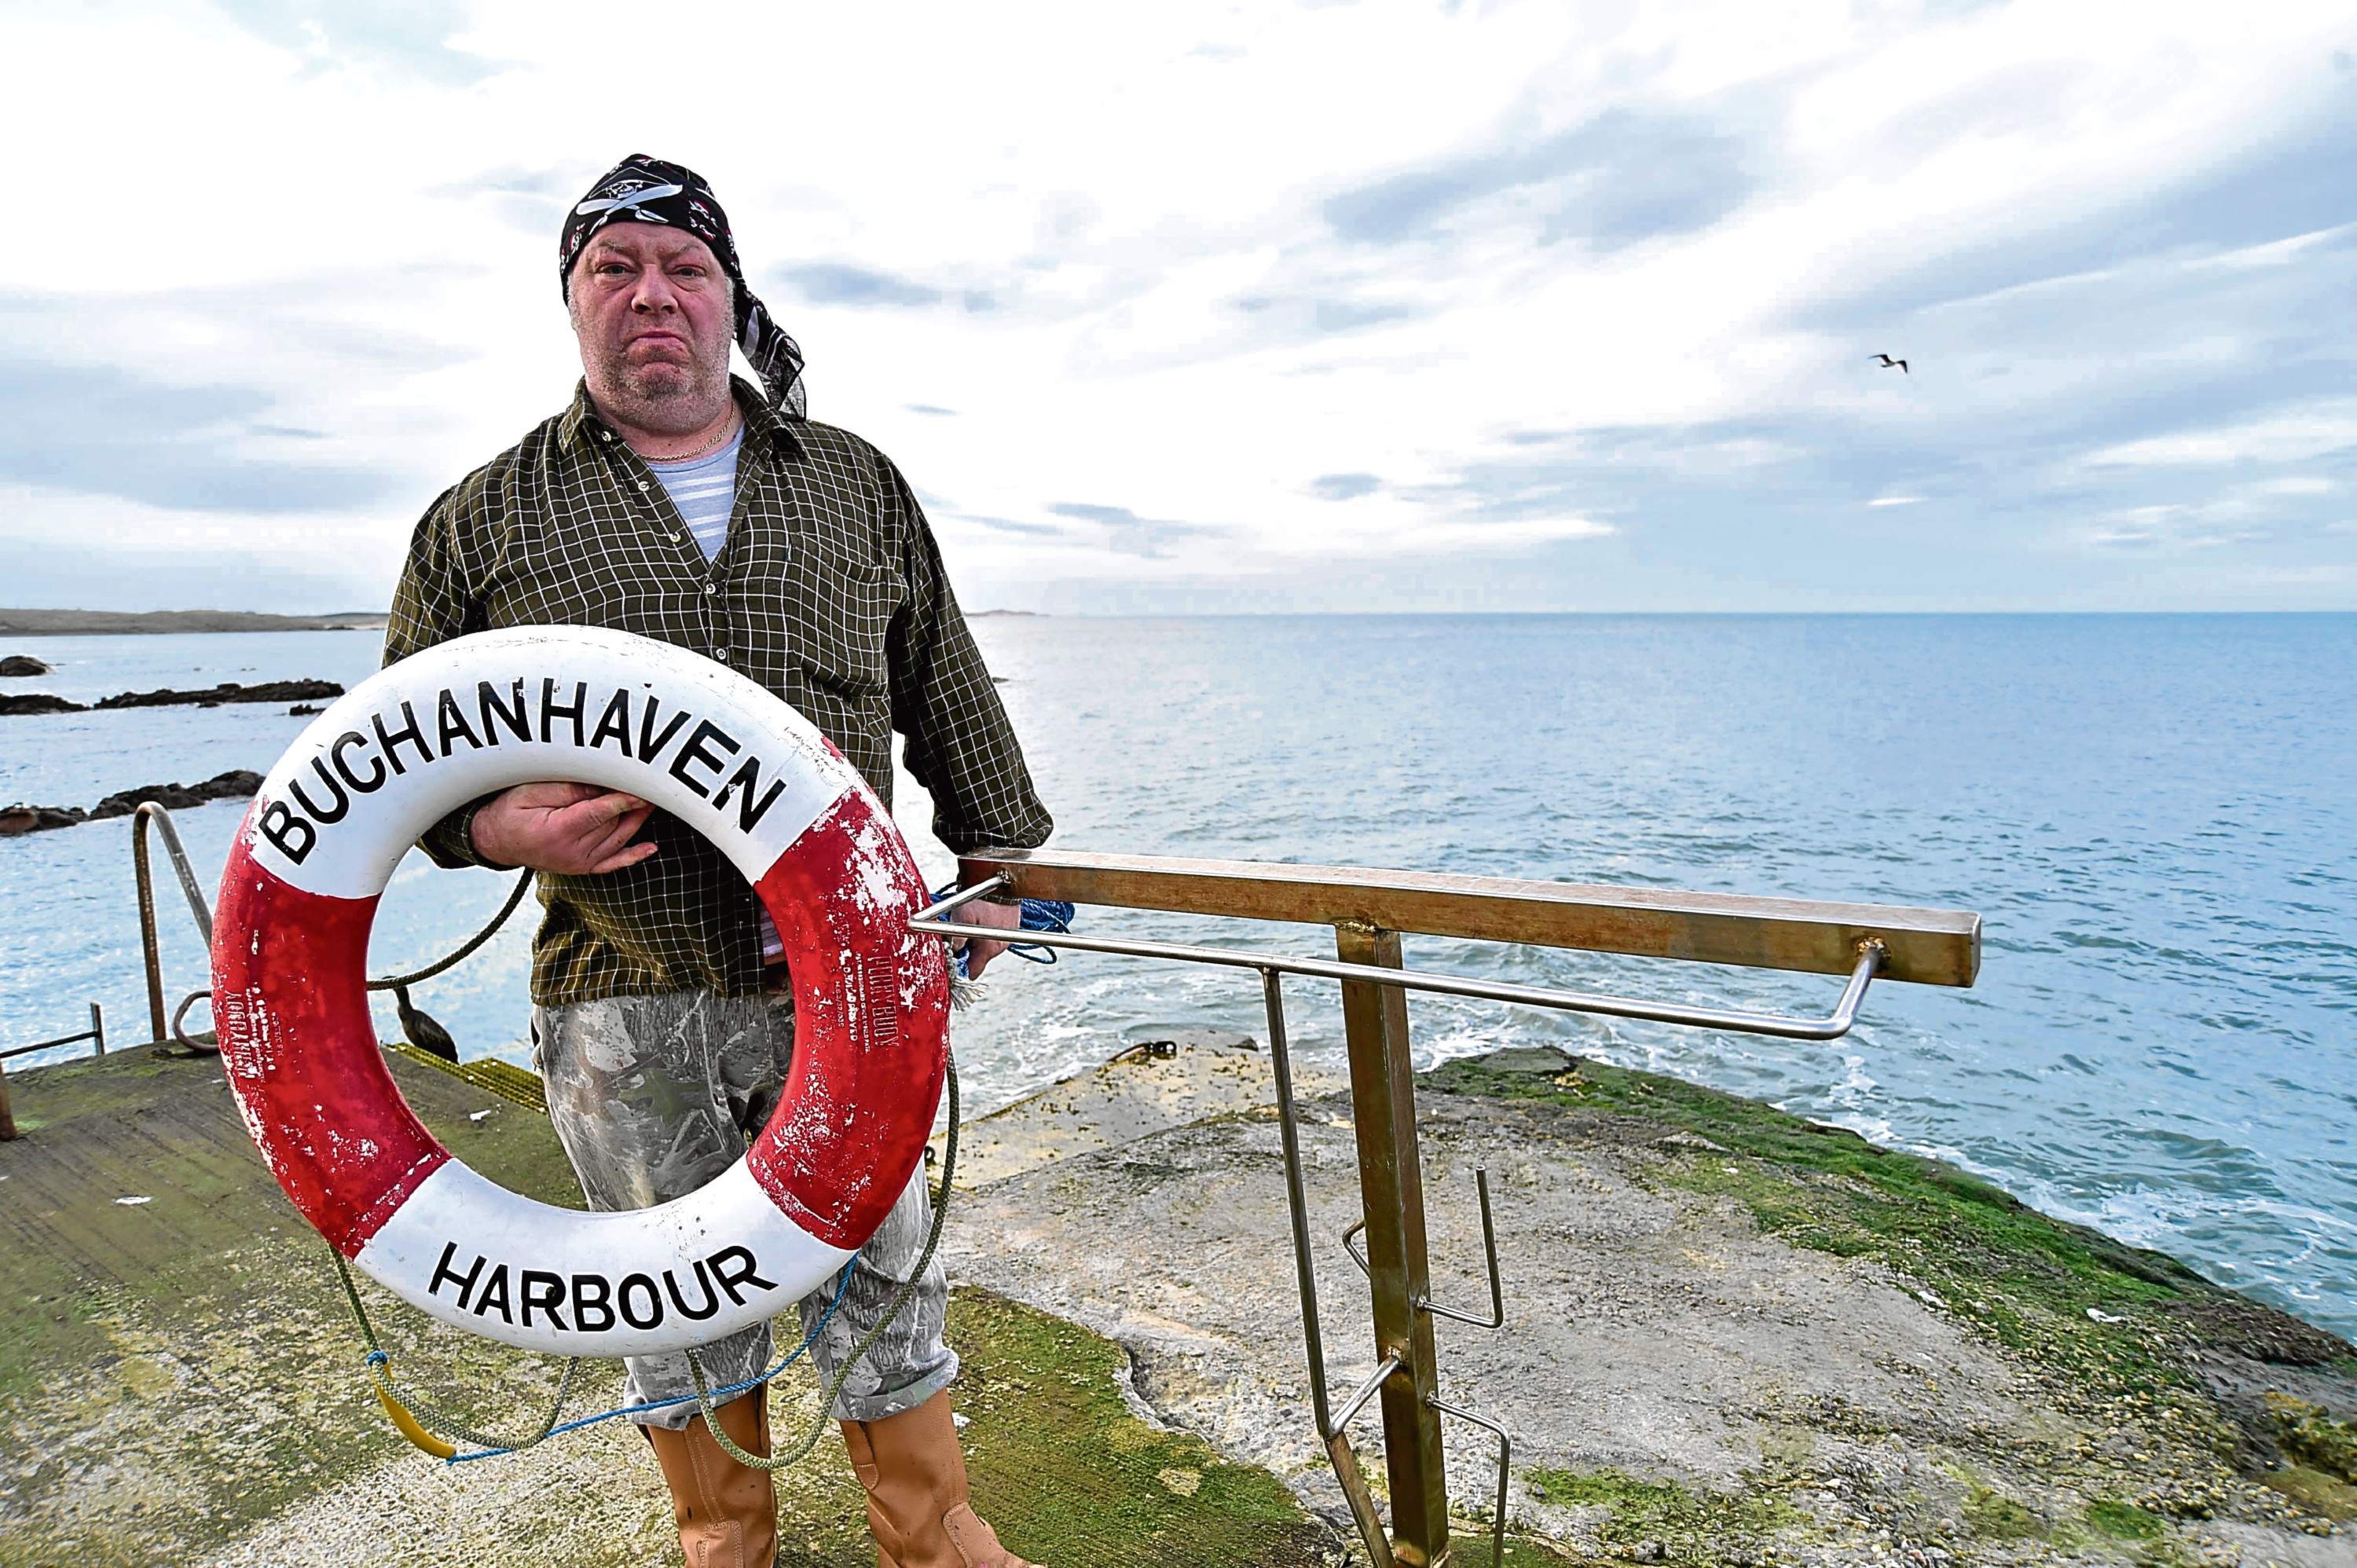 George Cameron from Buchanhaven Harbour with one of the two remaining lifebelts.